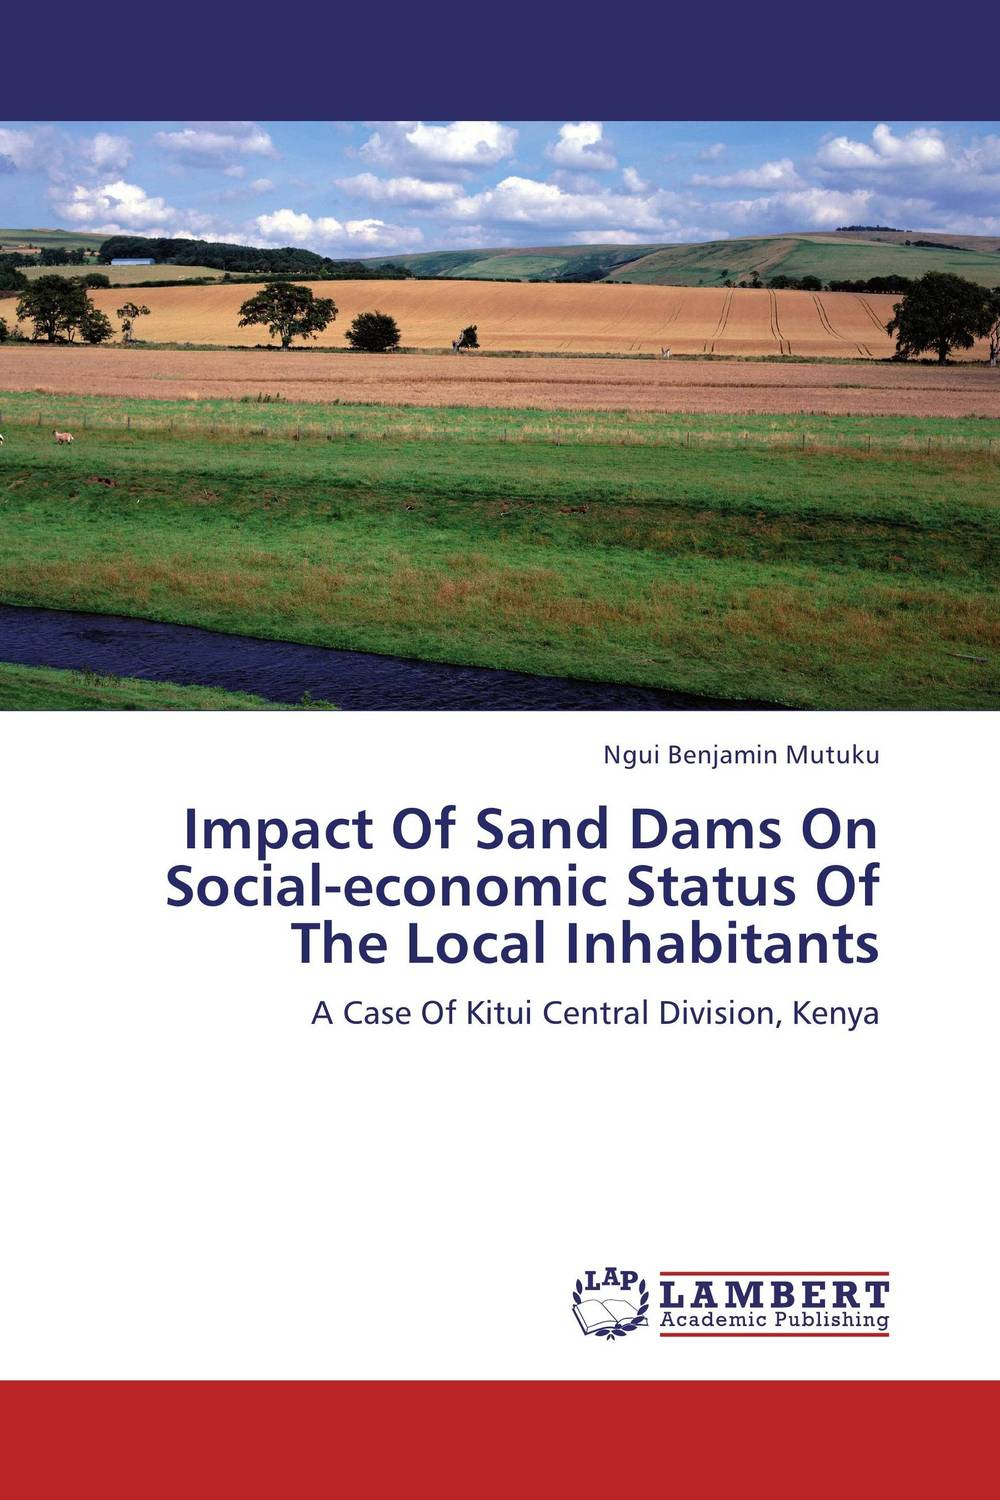 Impact Of Sand Dams On Social-economic Status Of The Local Inhabitants the track of sand page 1